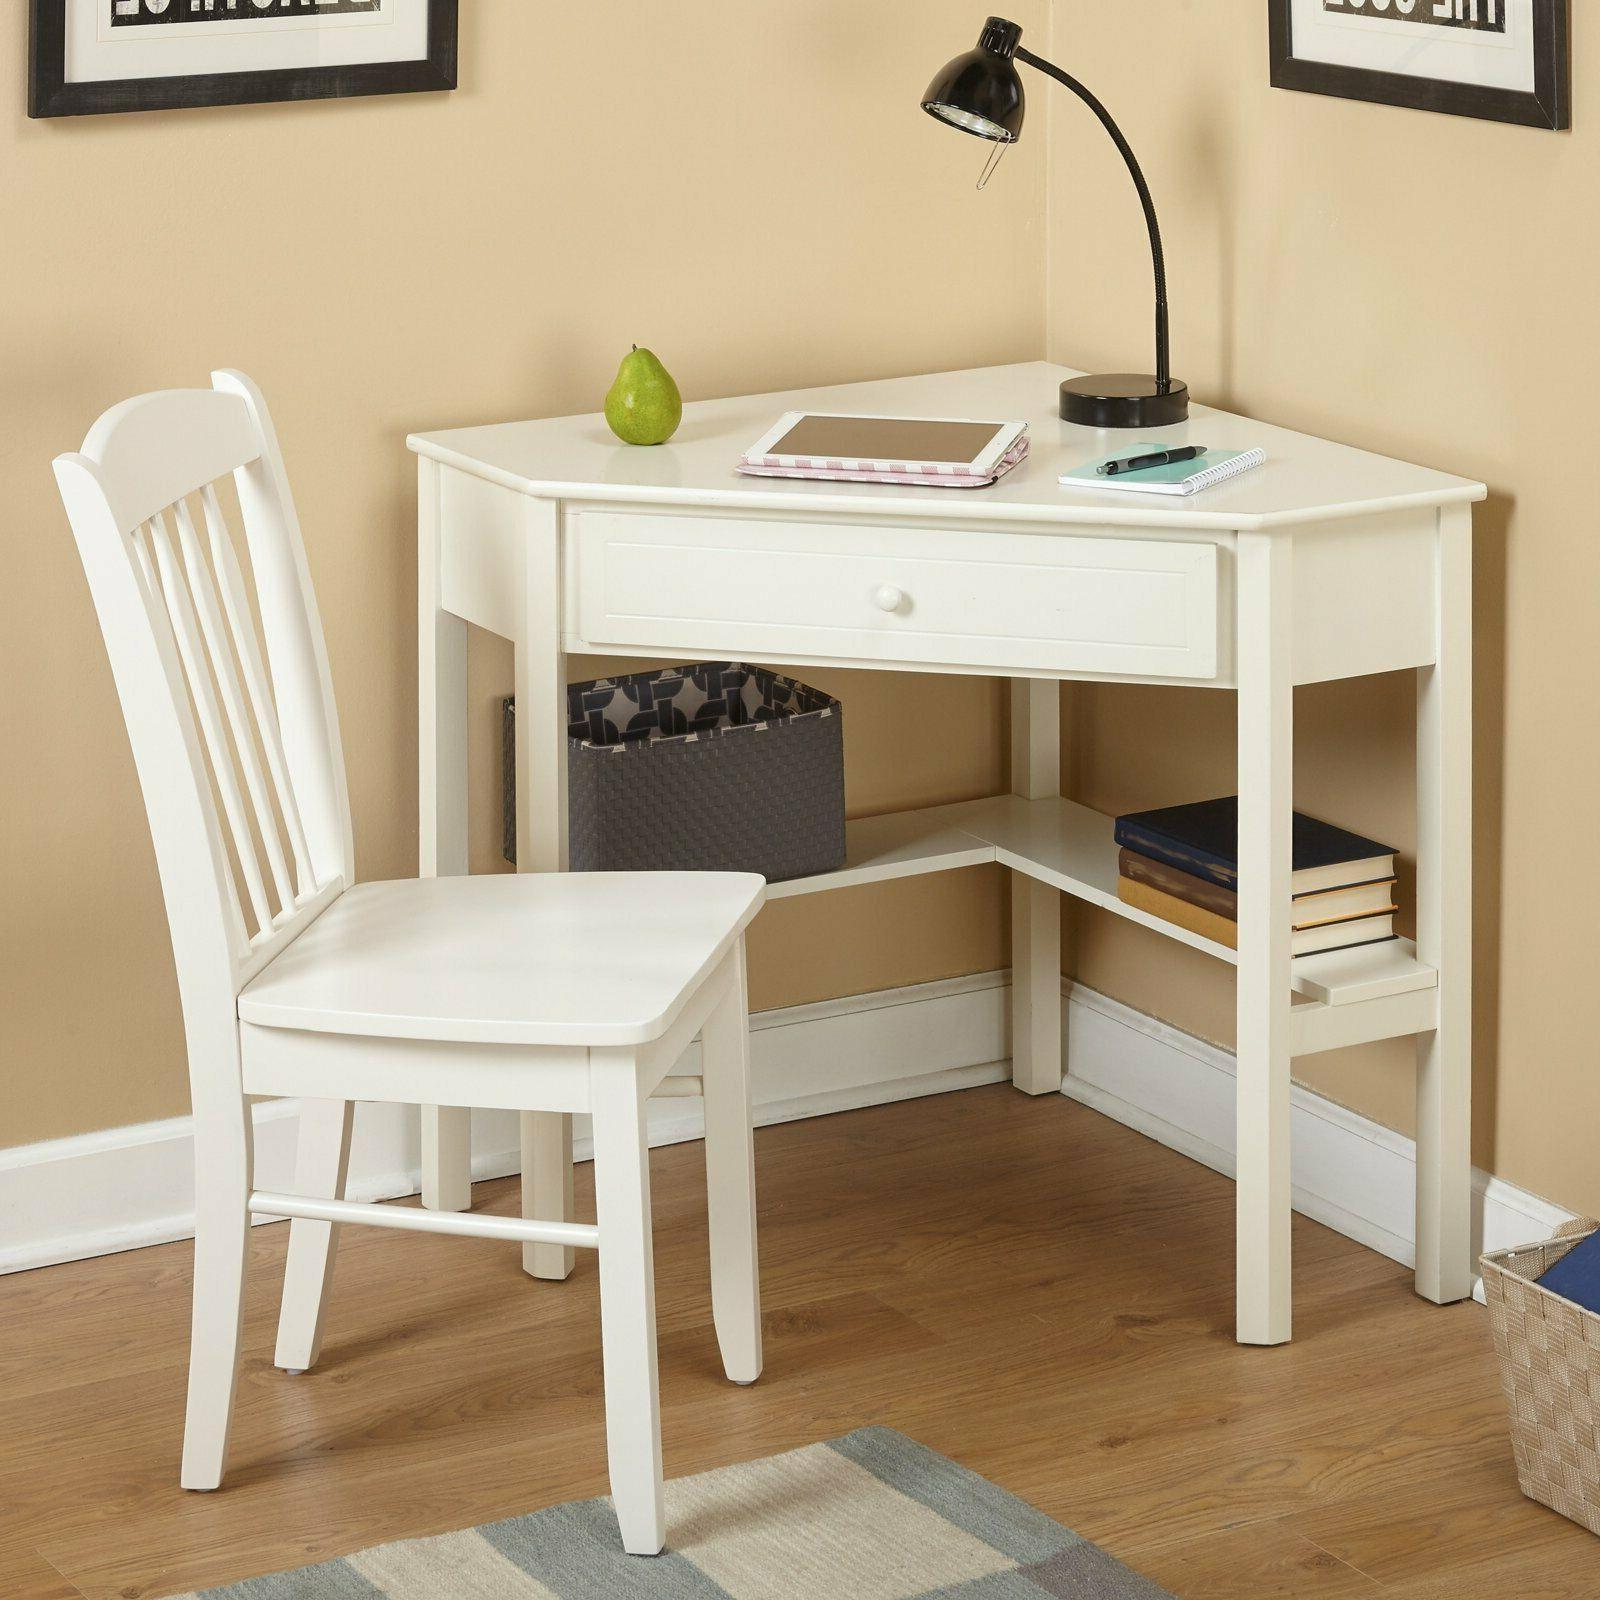 Student Desk Chair with Storage Drawer and Organizer